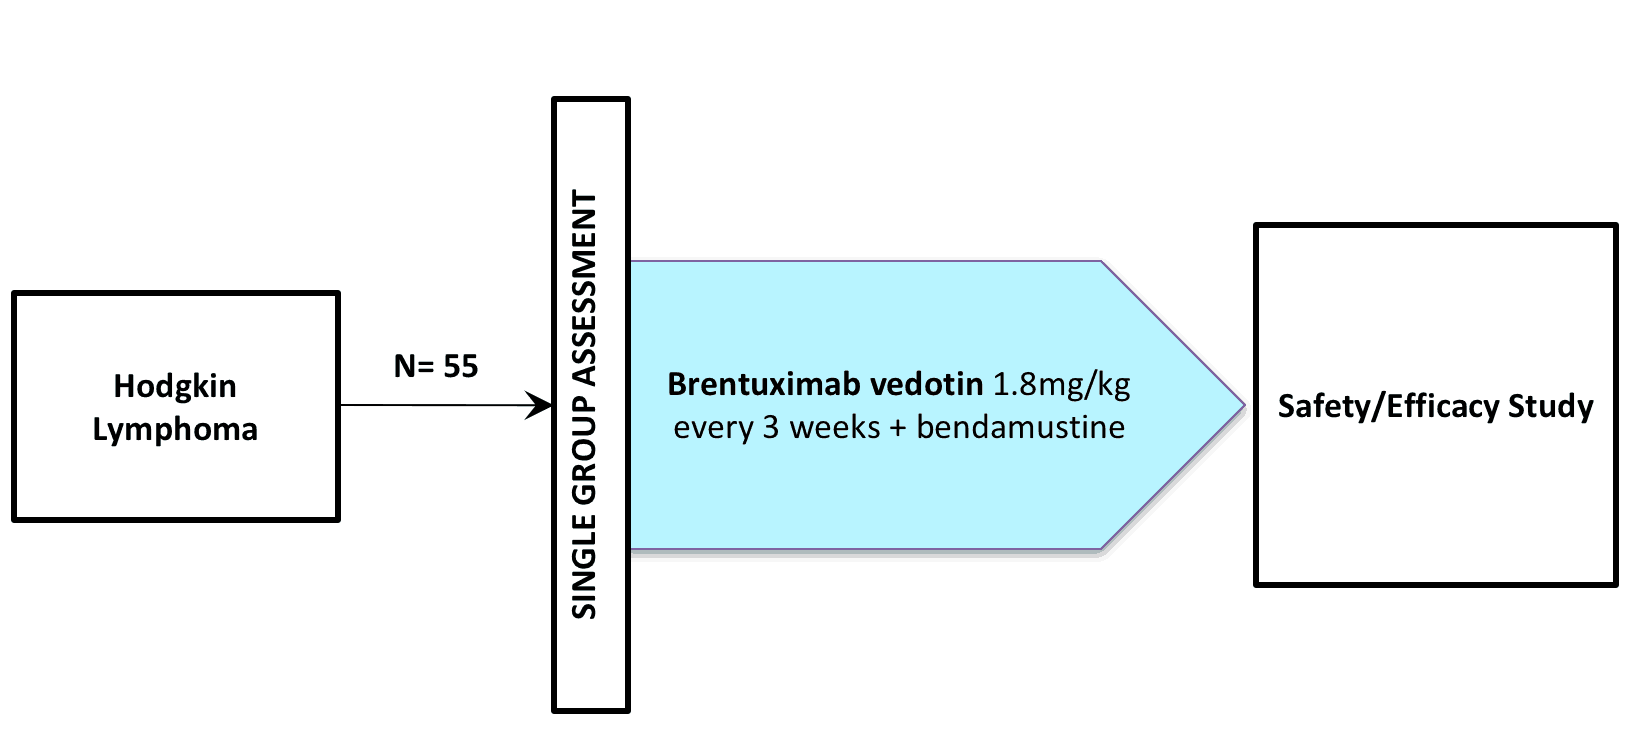 NCT01874054 (CLINICAL TRIAL / BRENTUXIMAB VEDOTIN / SGN-035 / ADCETRIS®)